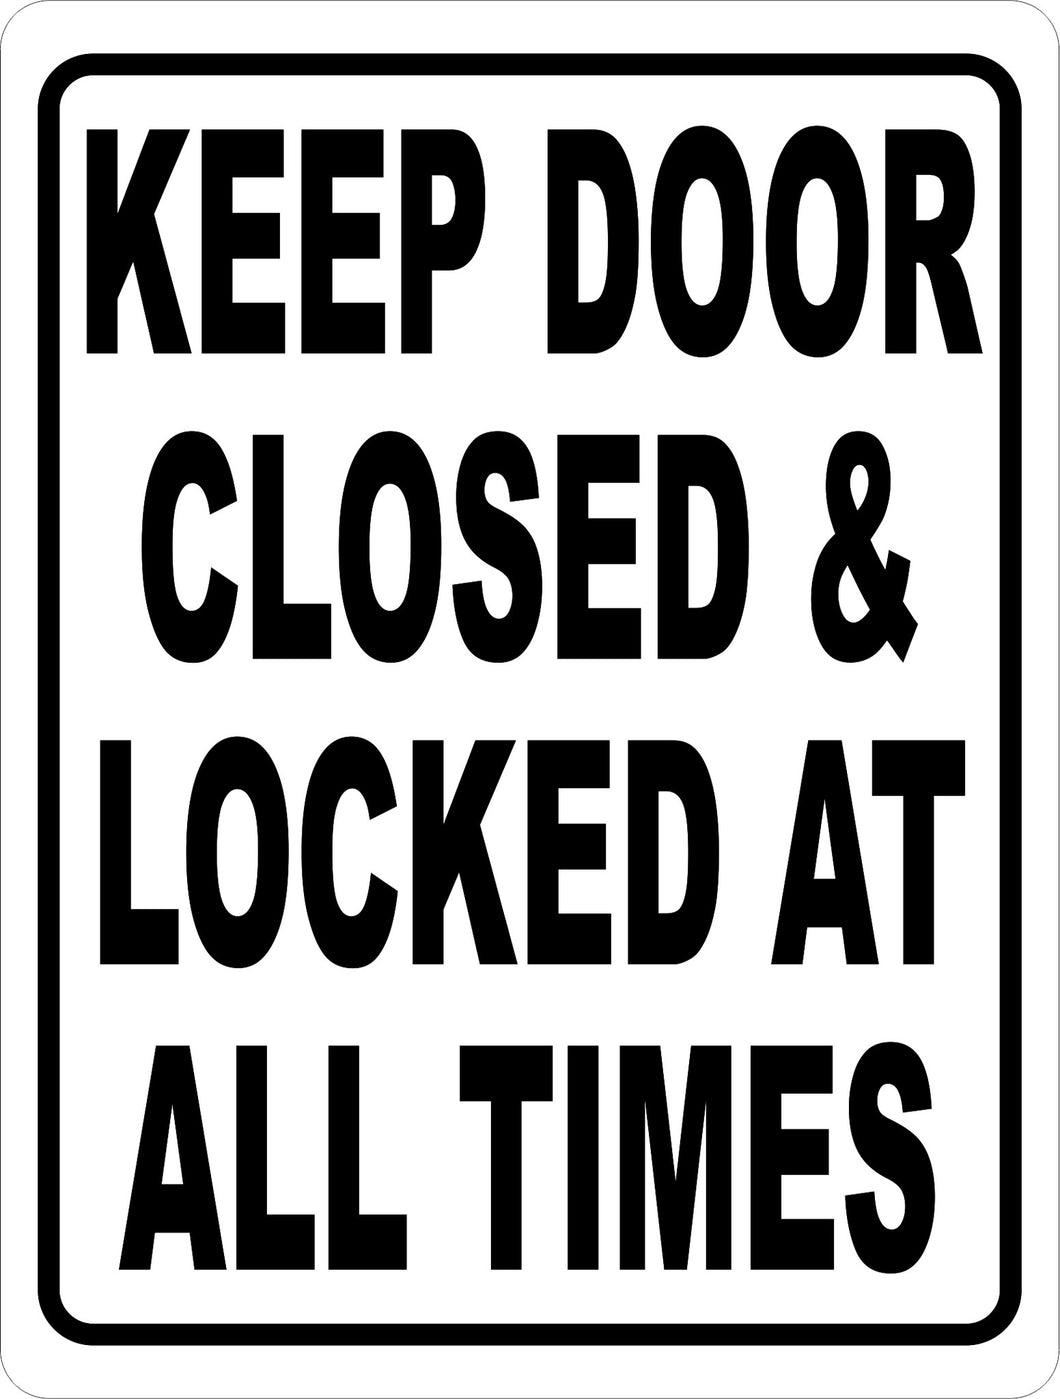 Keep Door Closed & Locked at All Times Sign - Signs & Decals by SalaGraphics